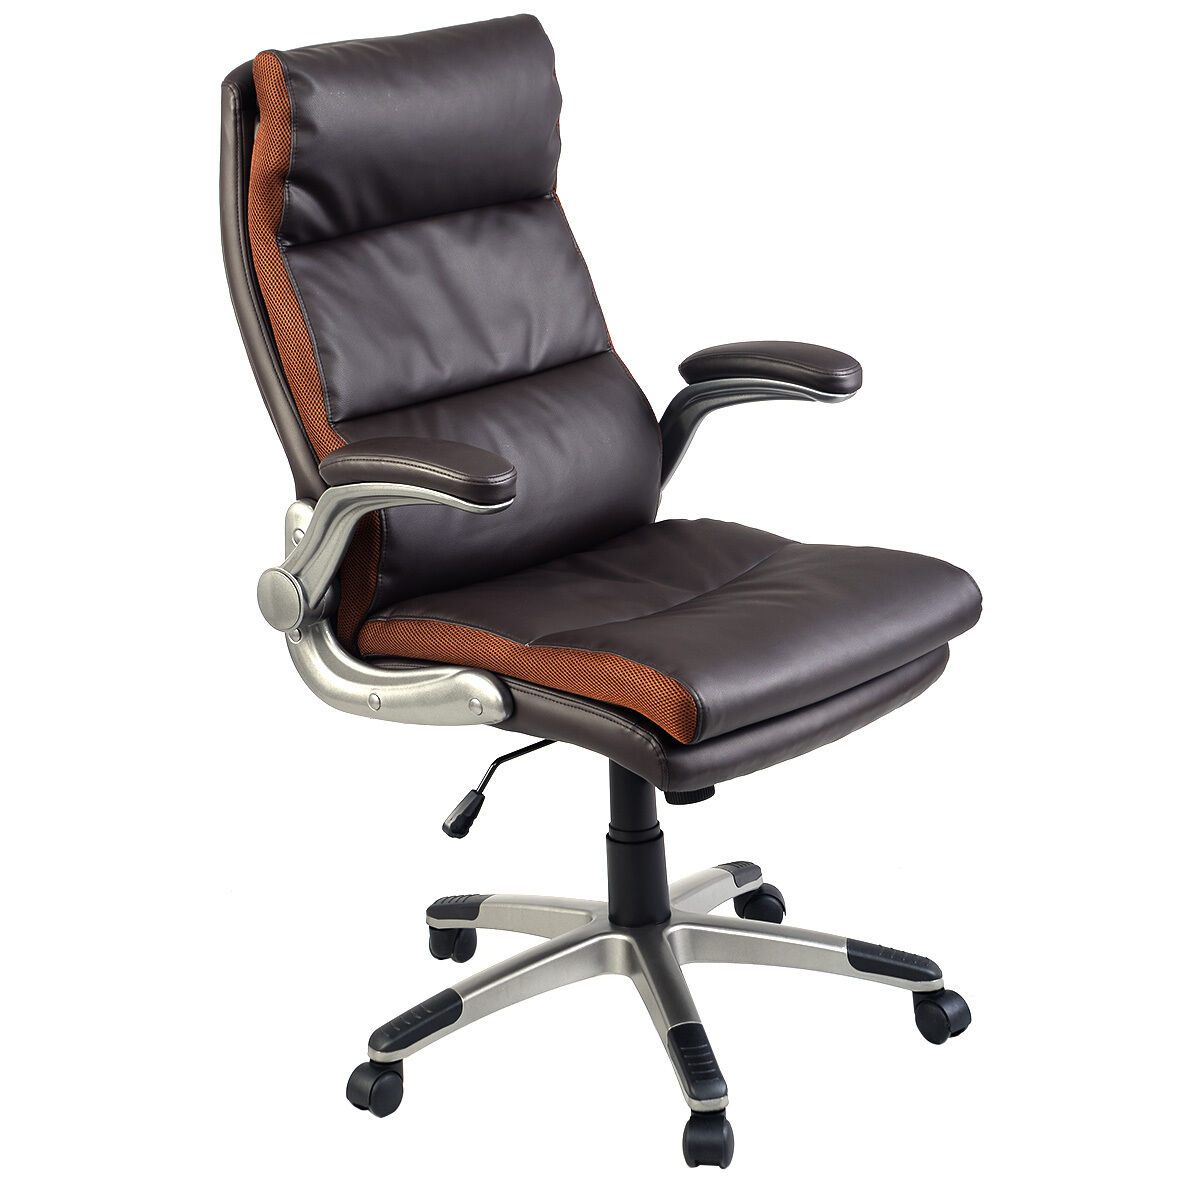 Best Computer Chair For Back New Ergonomic Pu Leather High Back Executive Computer Desk